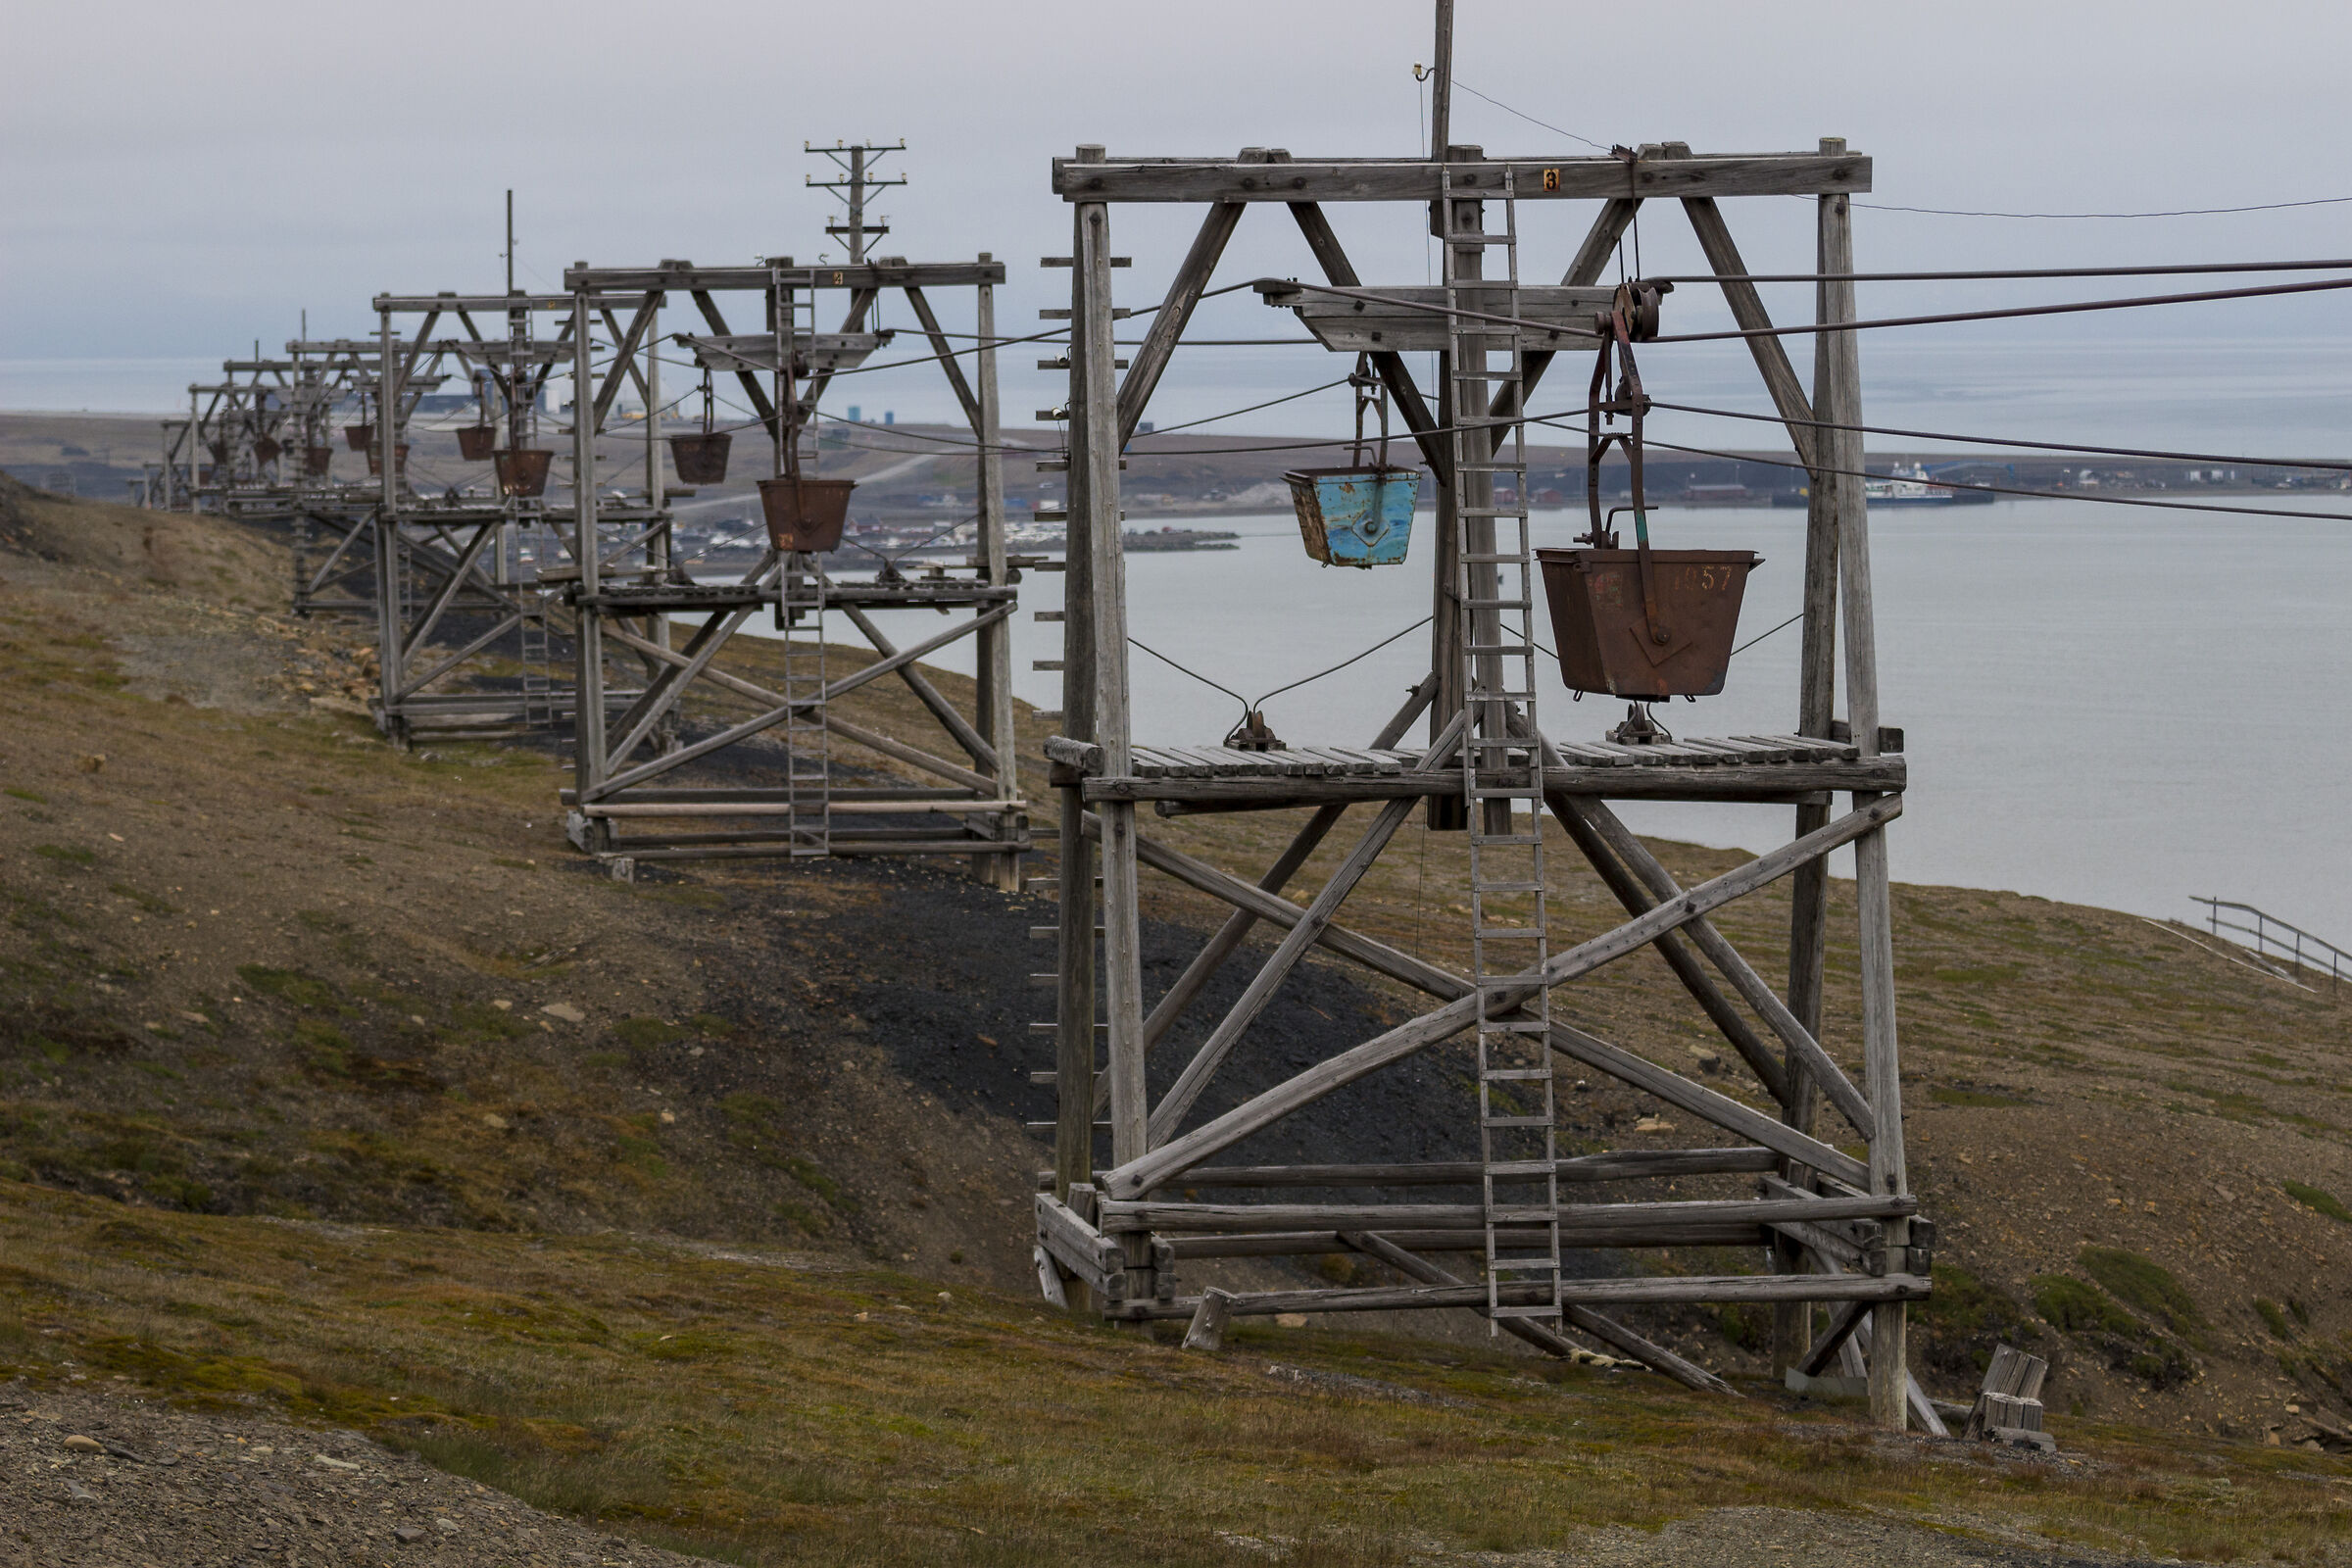 Il carbone alle isole Svalbard...